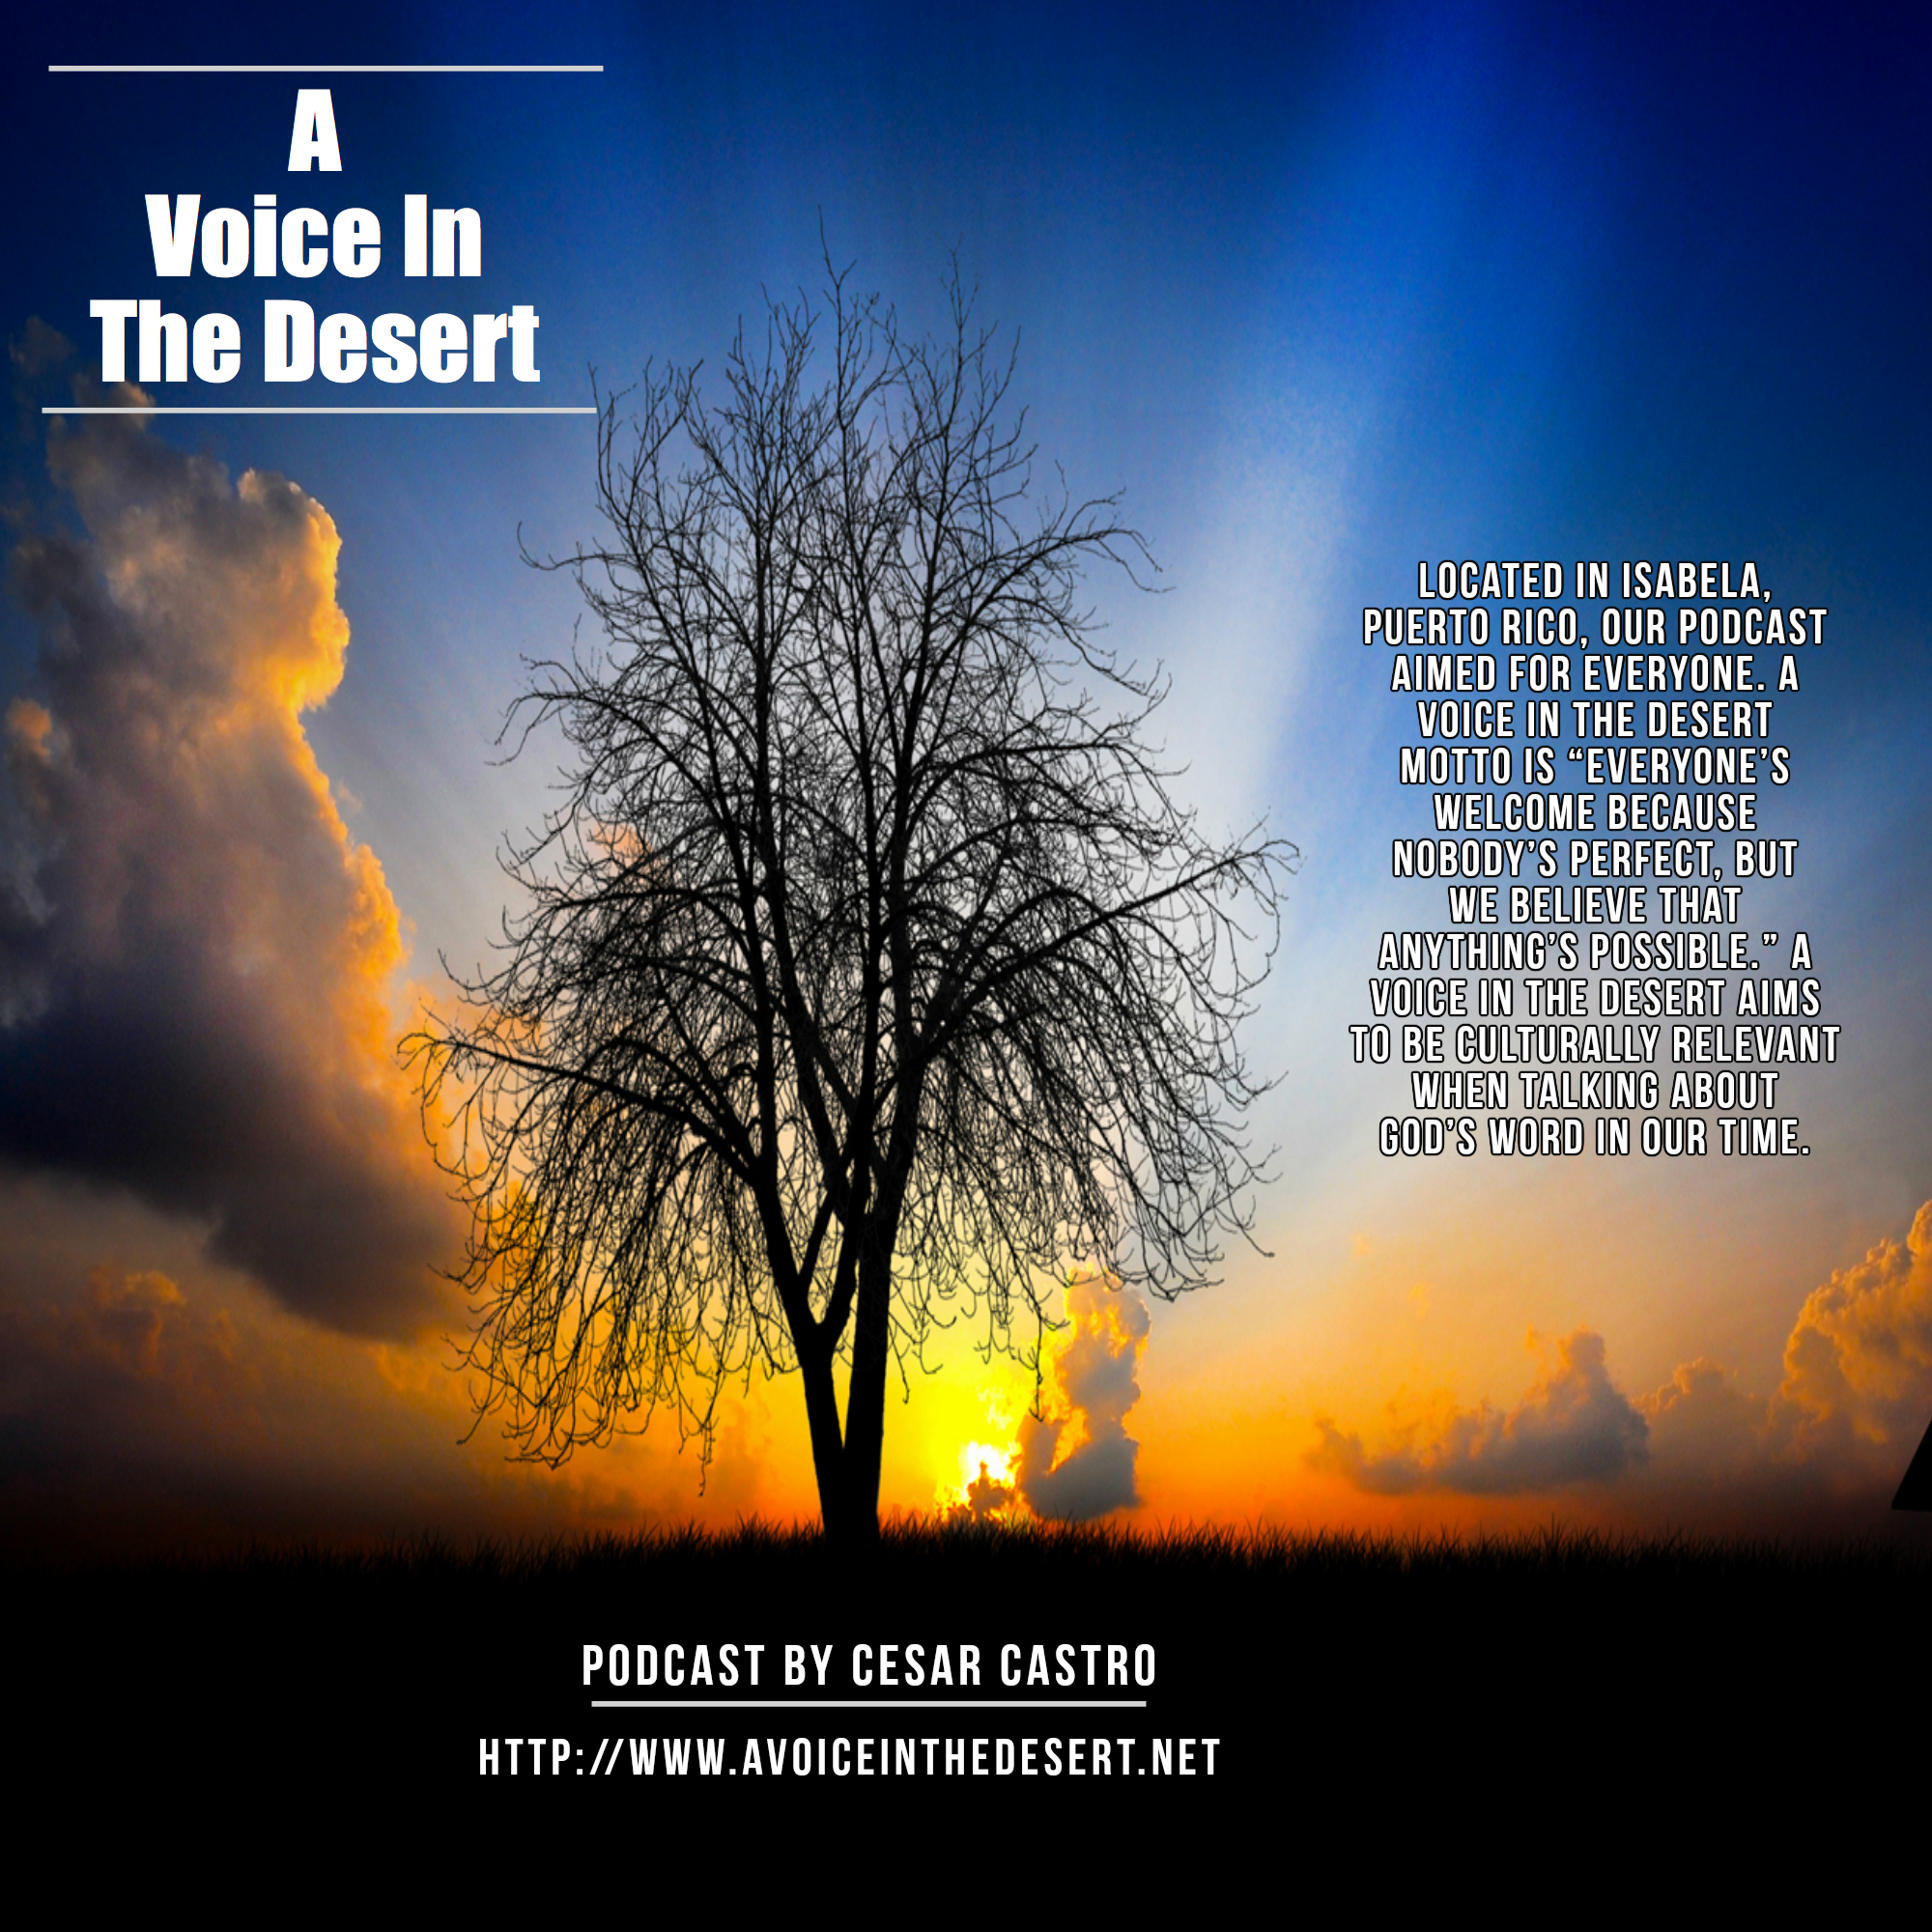 A Voice in The Desert Podcast show art